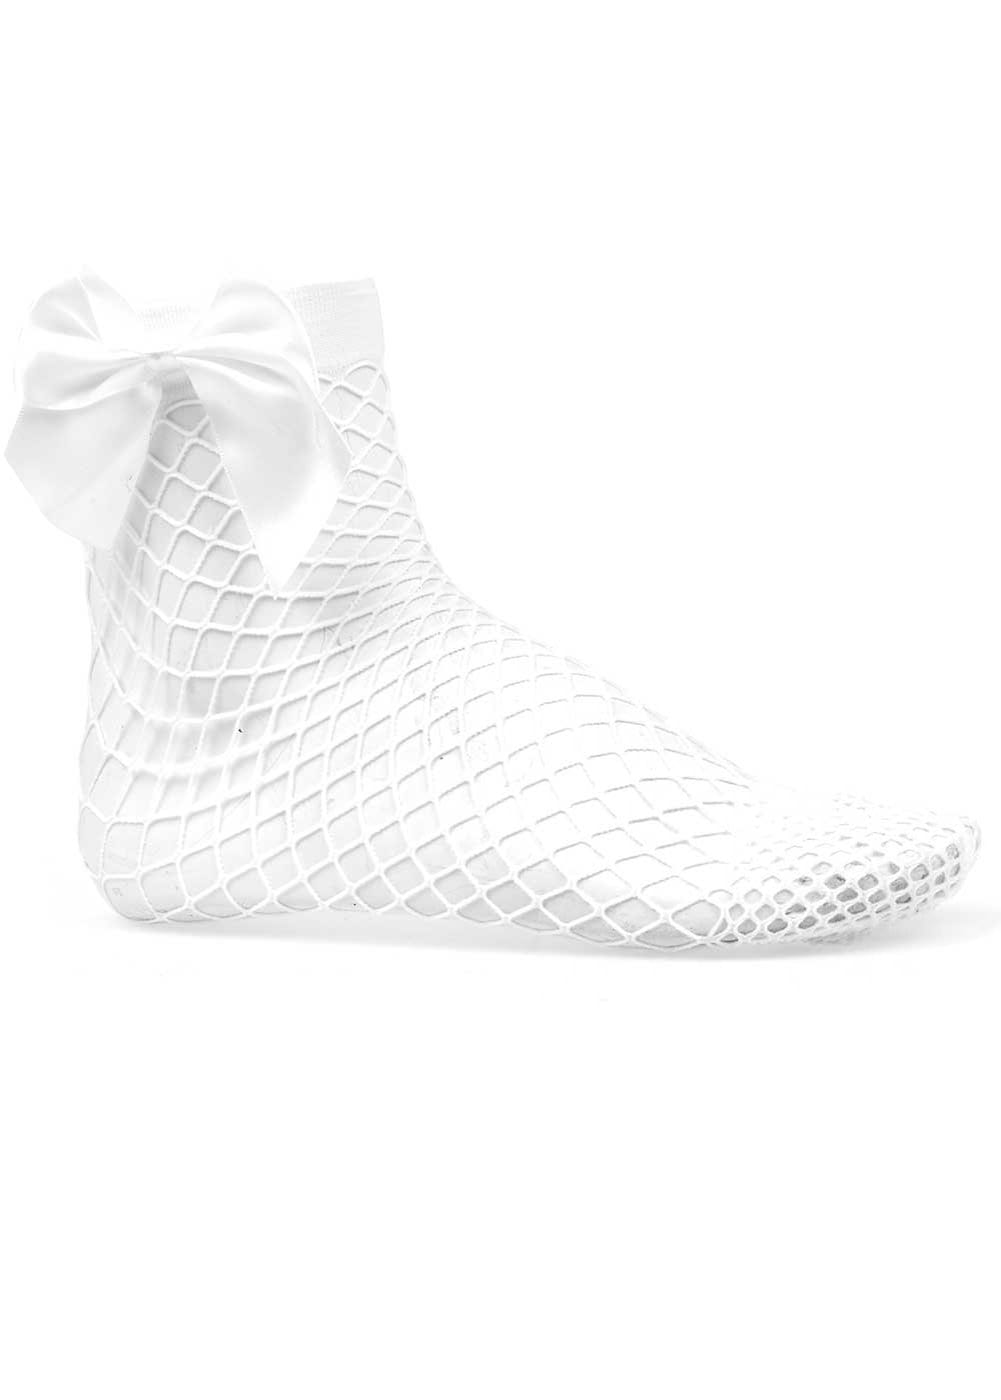 Girls White Fishnet Socks-Side